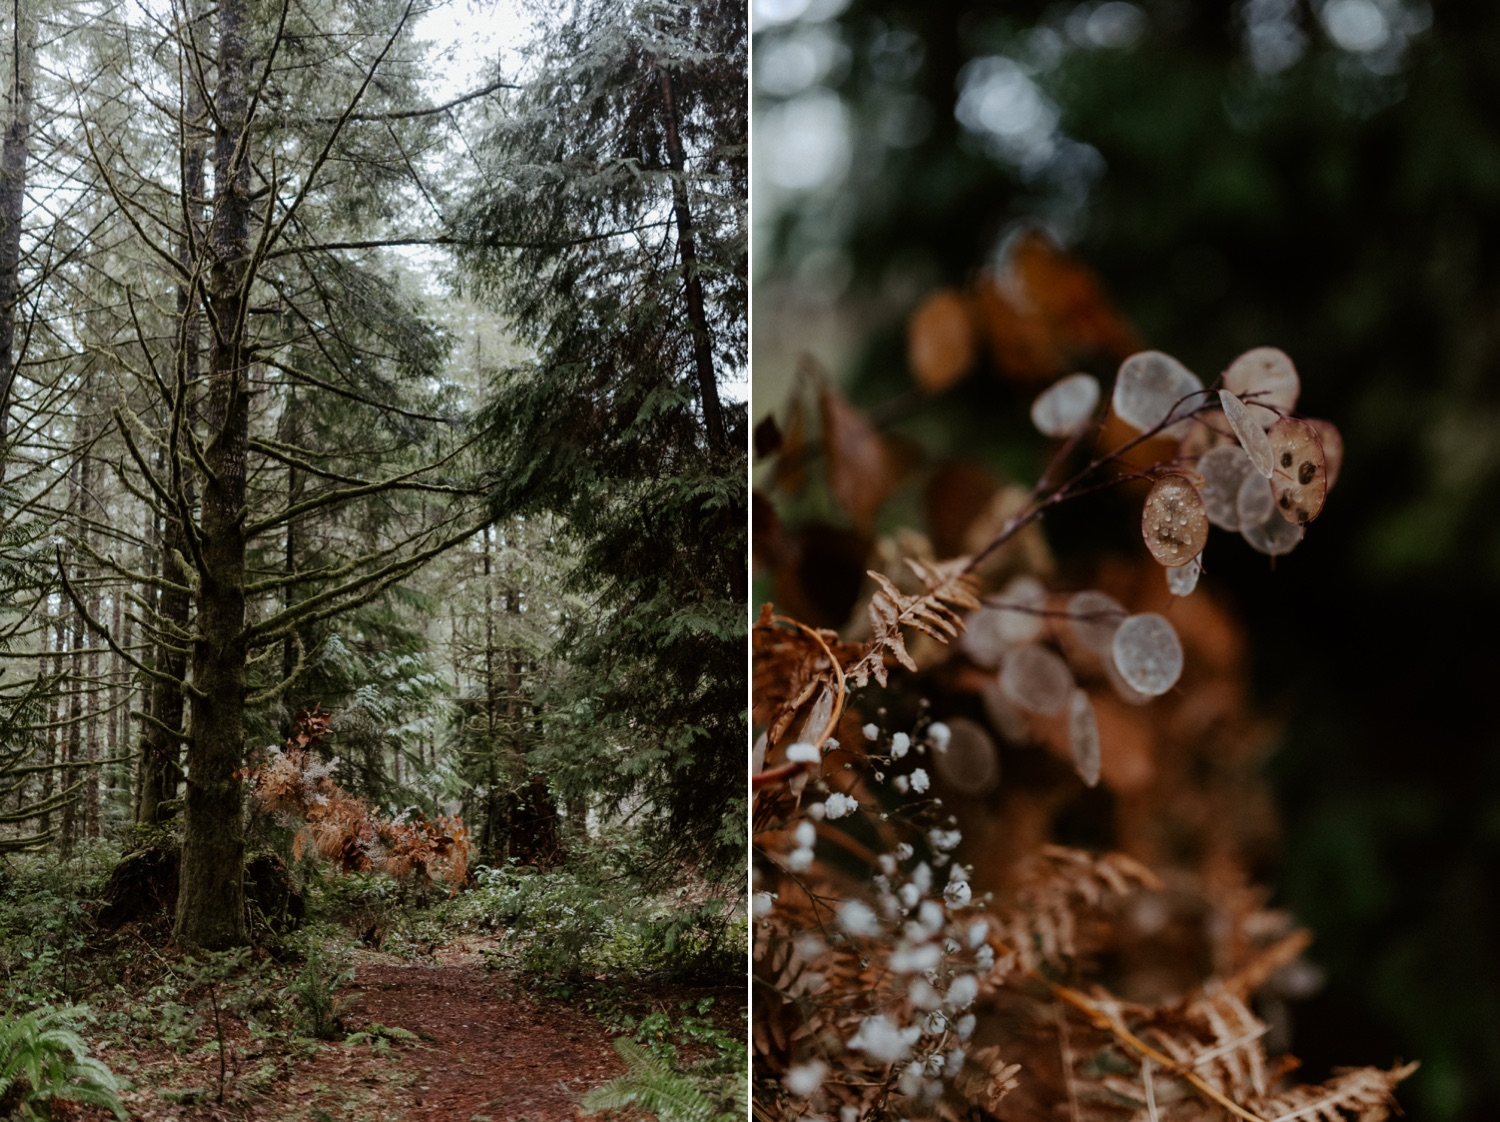 The Woodlands House Sandy Oregon Elopement Portland Elopement Photographer PNW Adventurous Elopement Anais Possamai Photography 012